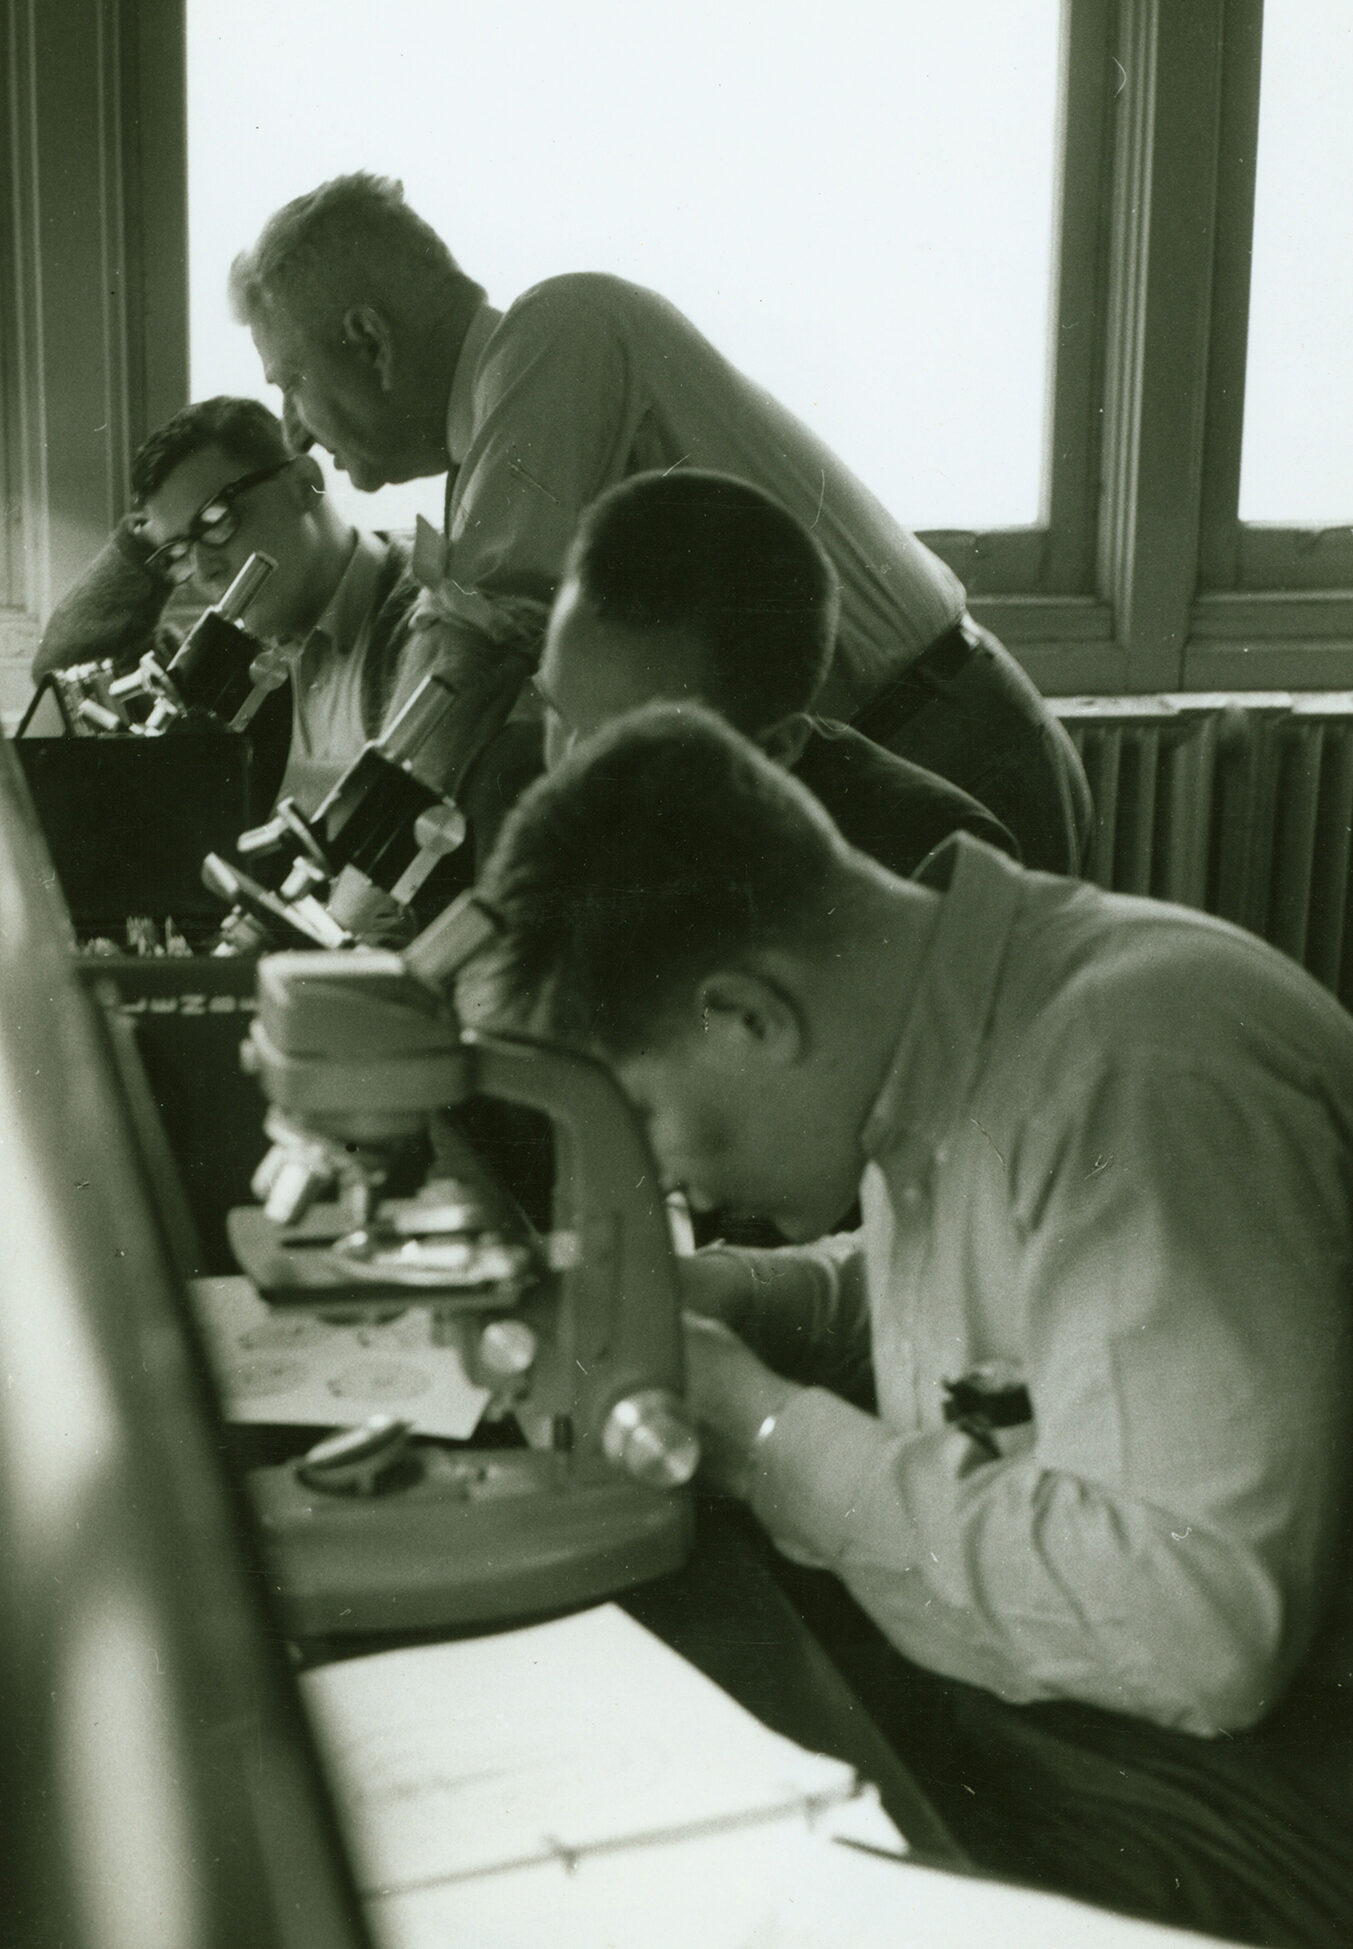 Dr. Shankweiler with students in a lab, circa 1960